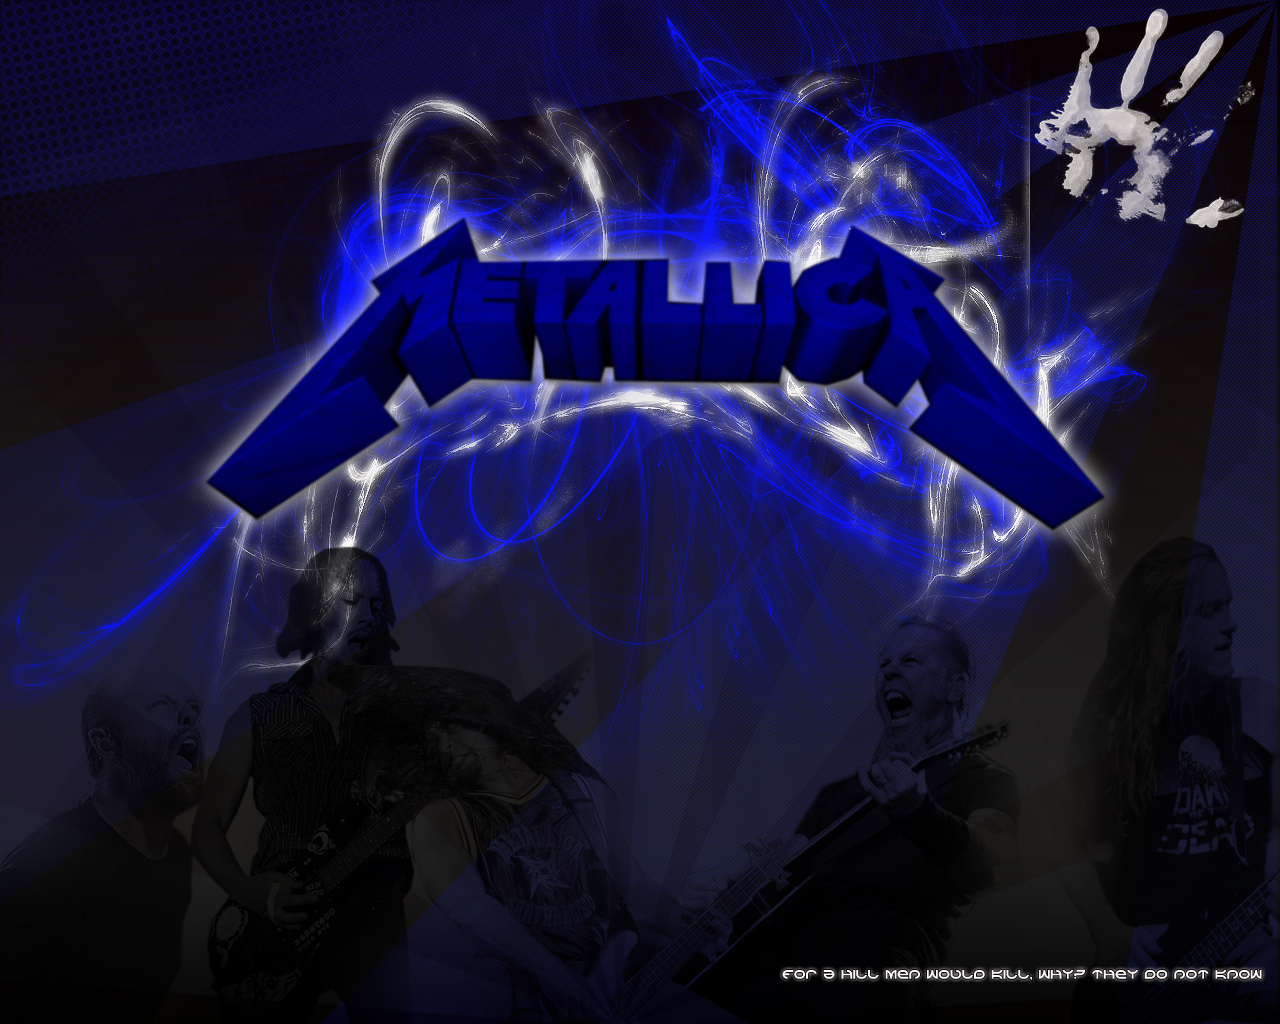 Metallica - Metallica Wallpaper (18560482) - Fanpop